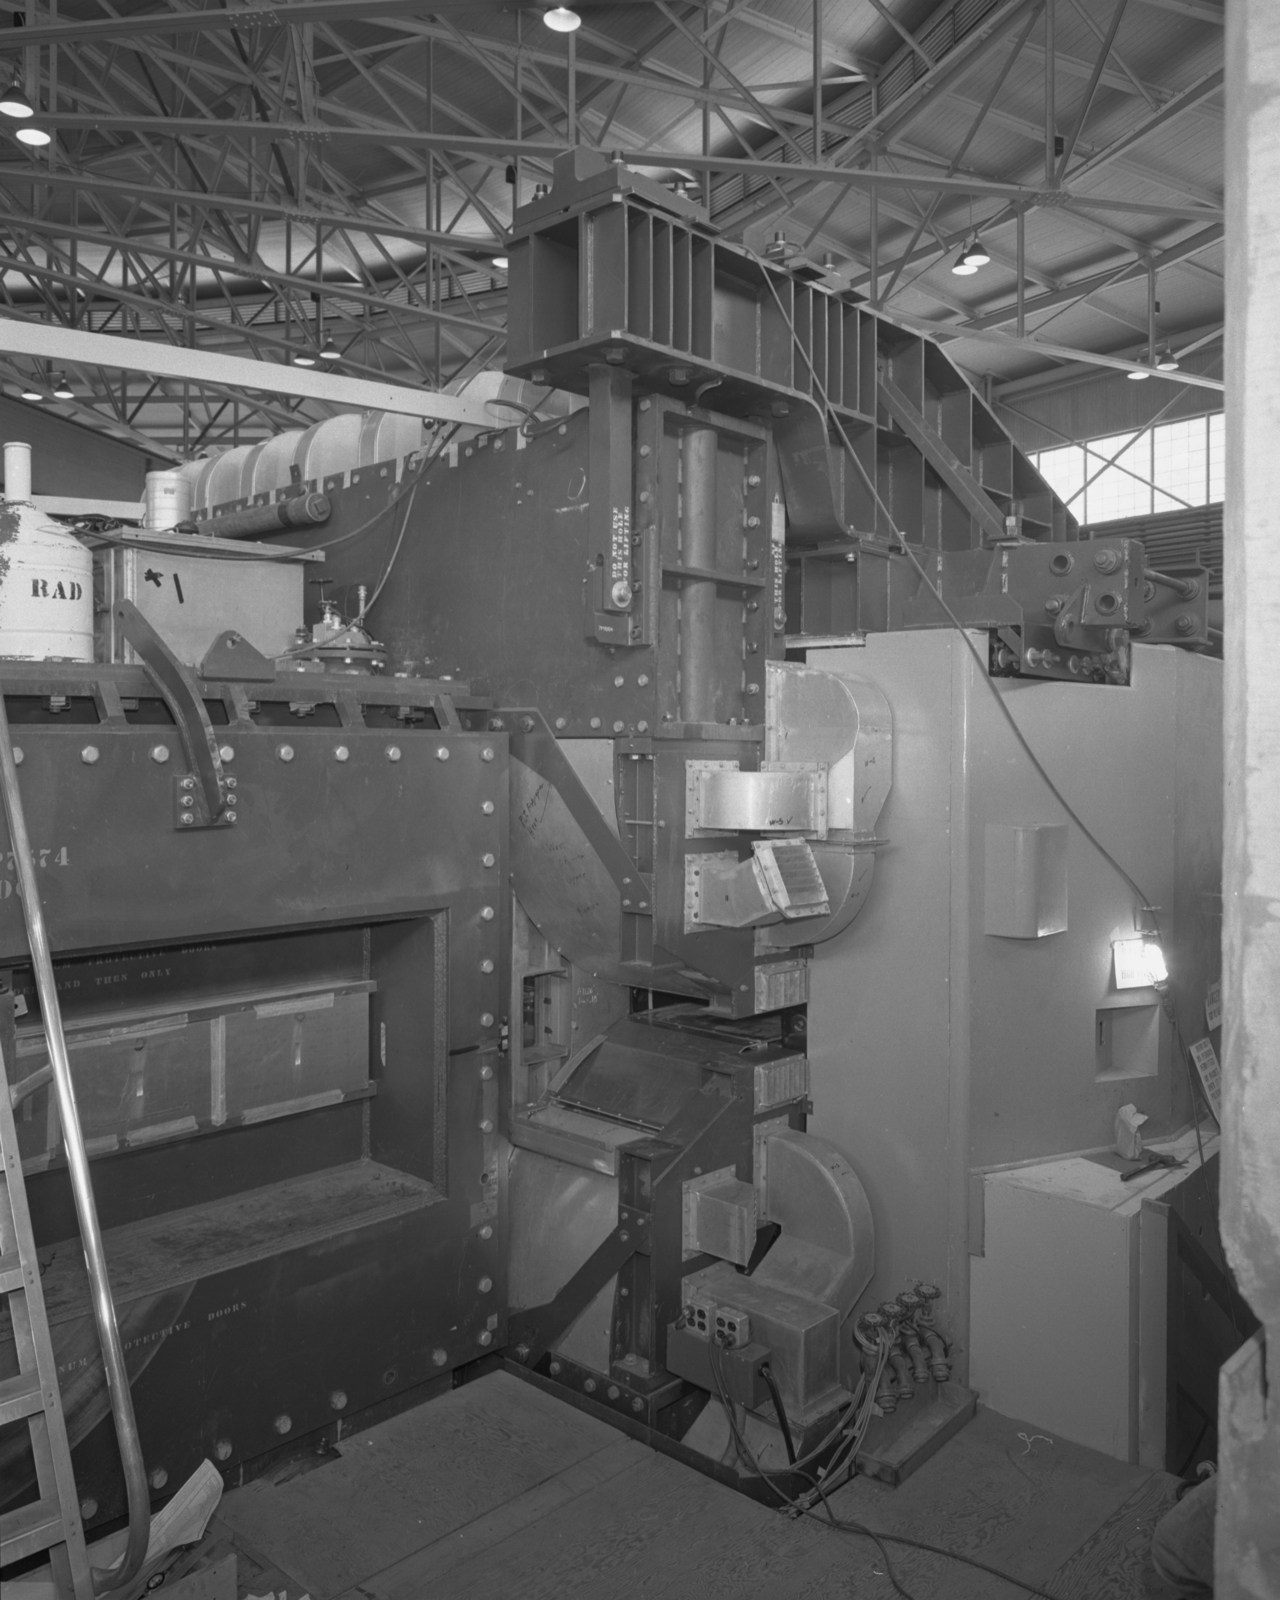 West overhead coil support. Photograph taken May 29, 1957. Bevatron-1342